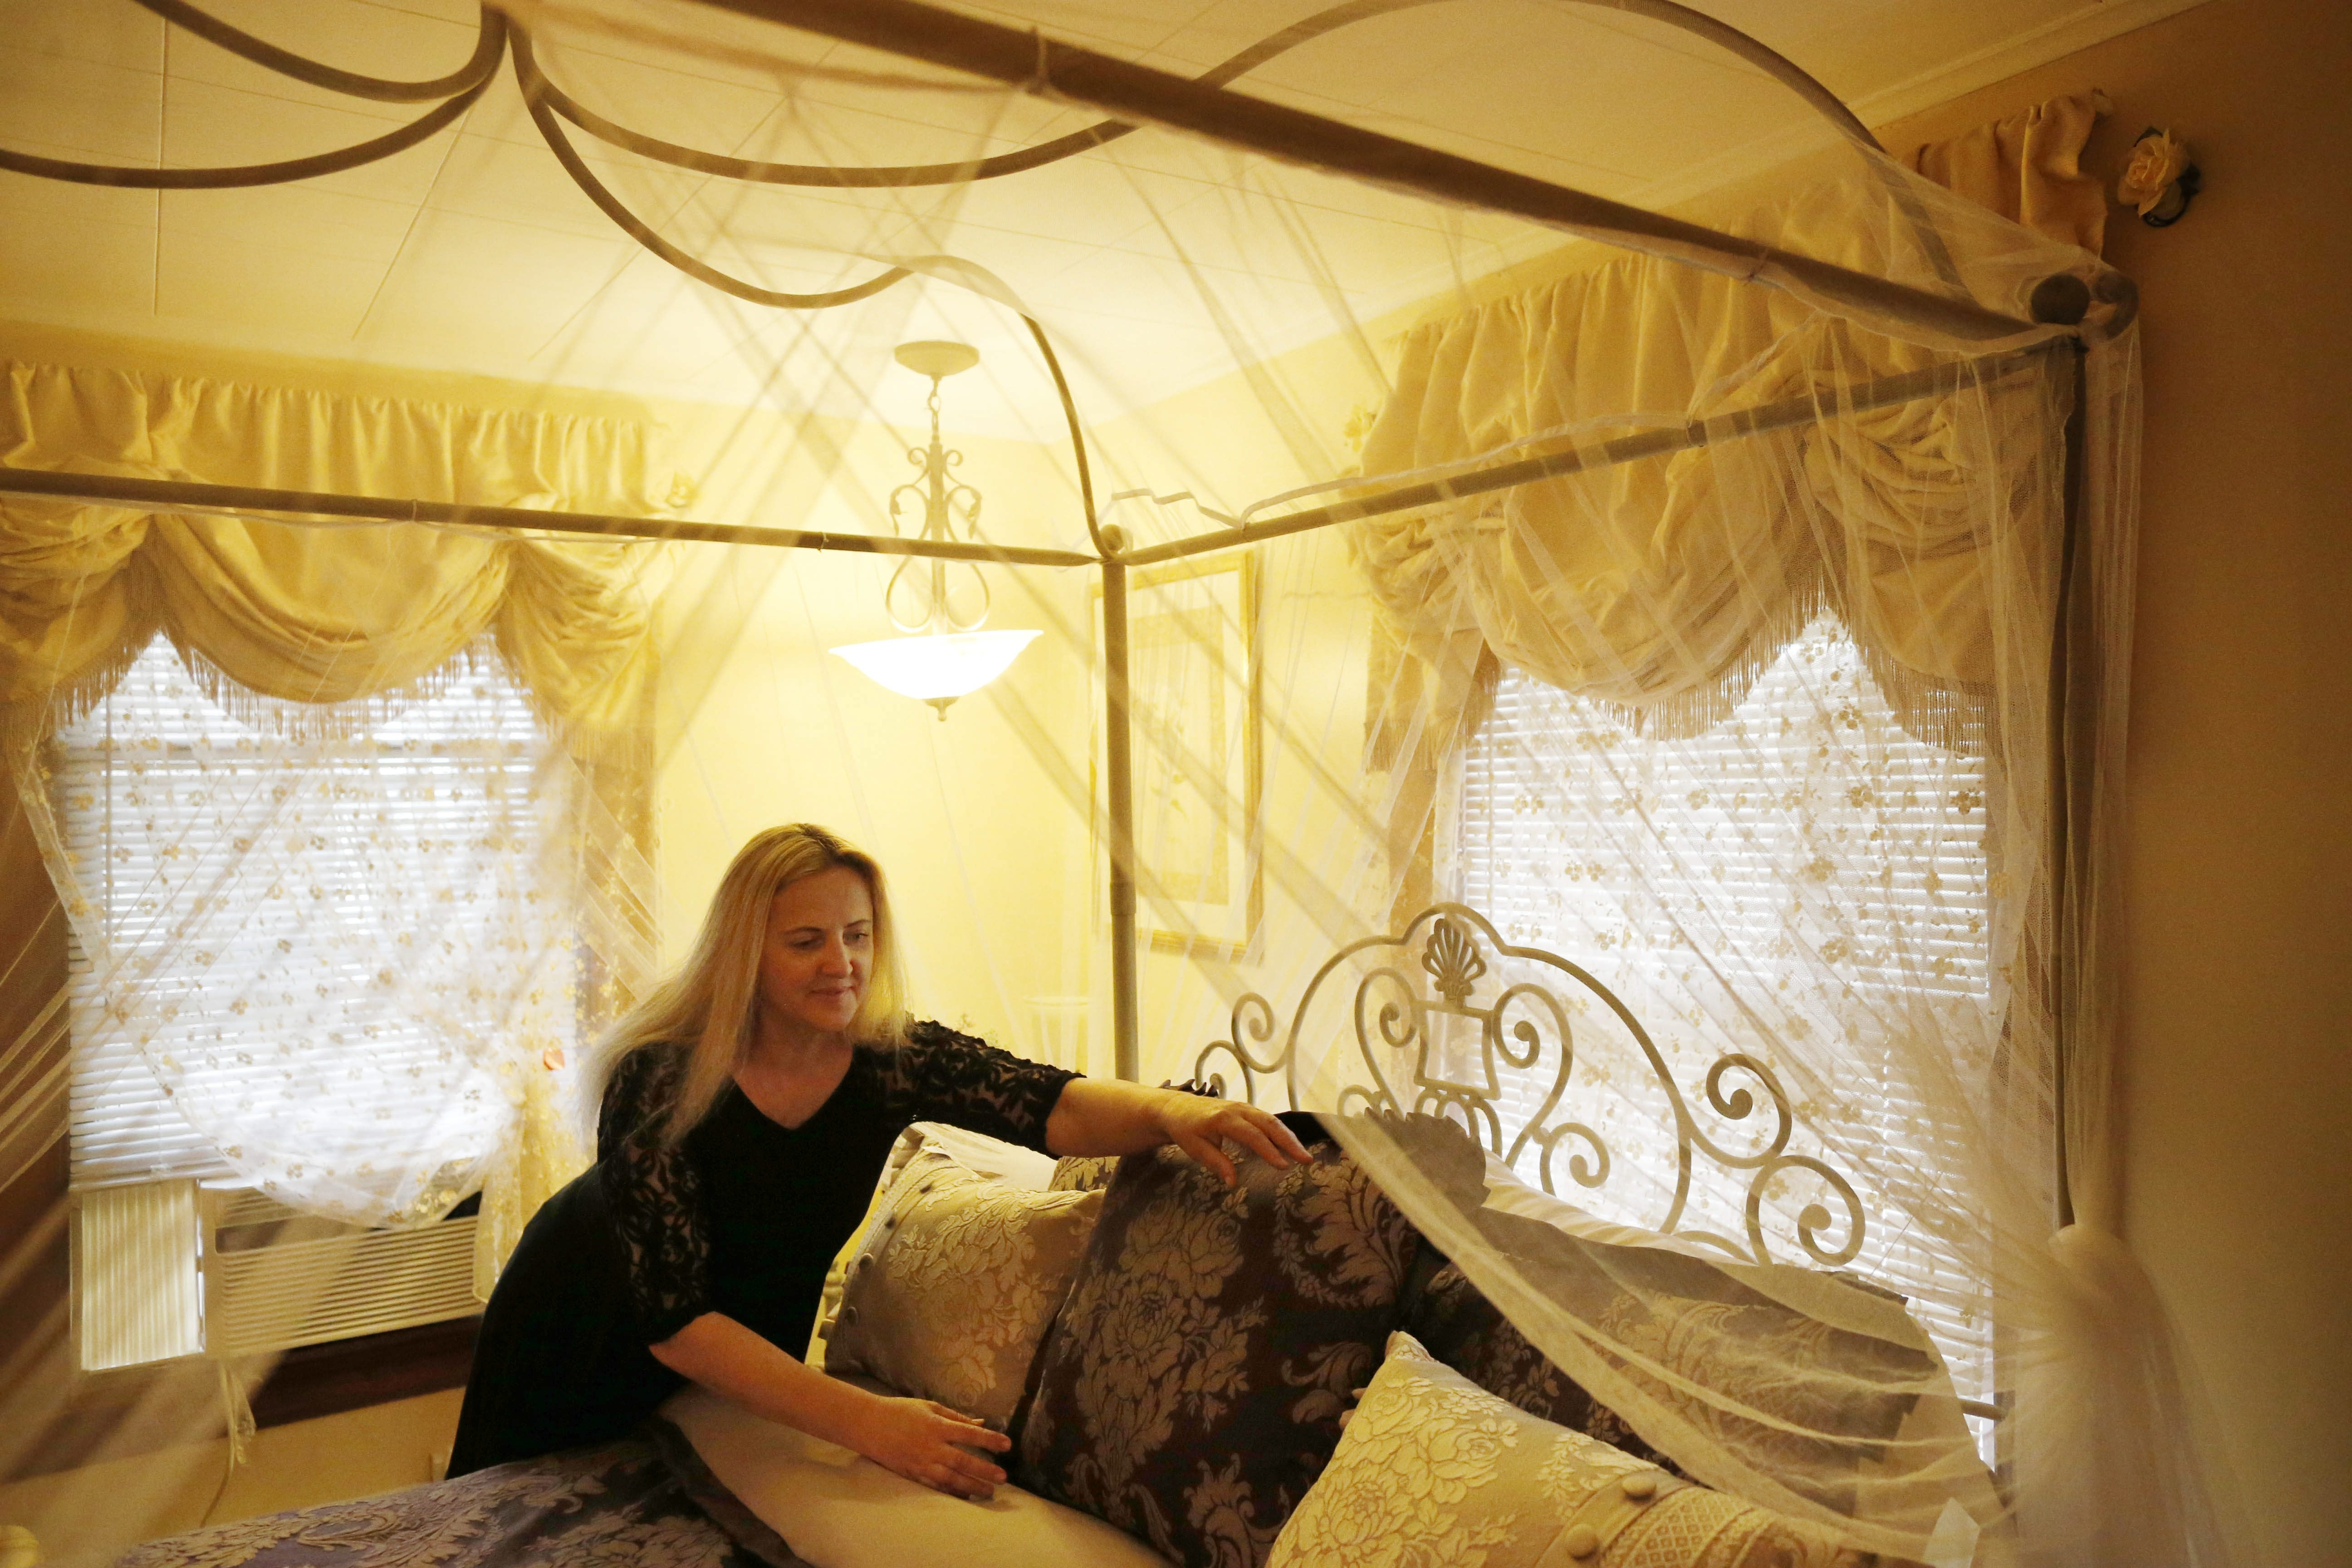 Halina Smouse, owner of the Butler House Bed and Breakfast, makes up a bed in a guest room. The Butler House is a fully licensed bed-and-breakfast, and takes a small percentage of its bookings from Airbnb. (Derek Gee/Buffalo News)